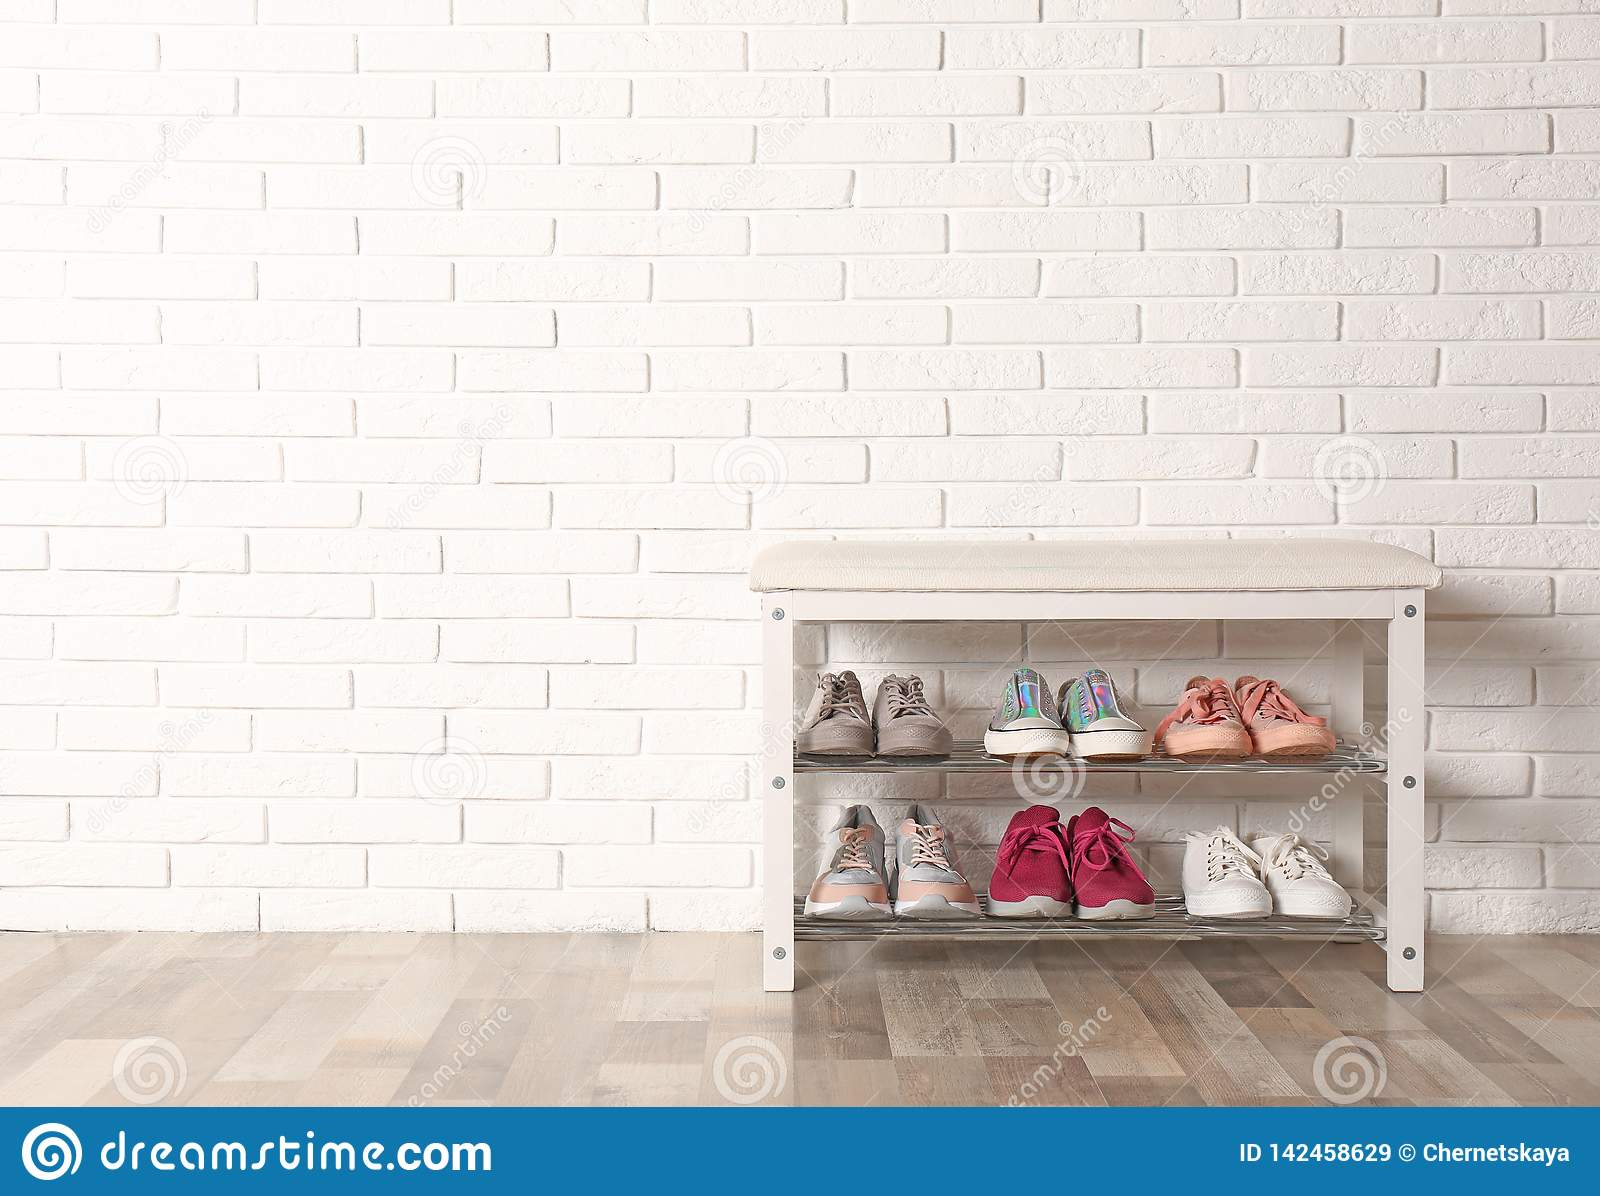 Shoe storage bench with different sneakers near wall, space for text